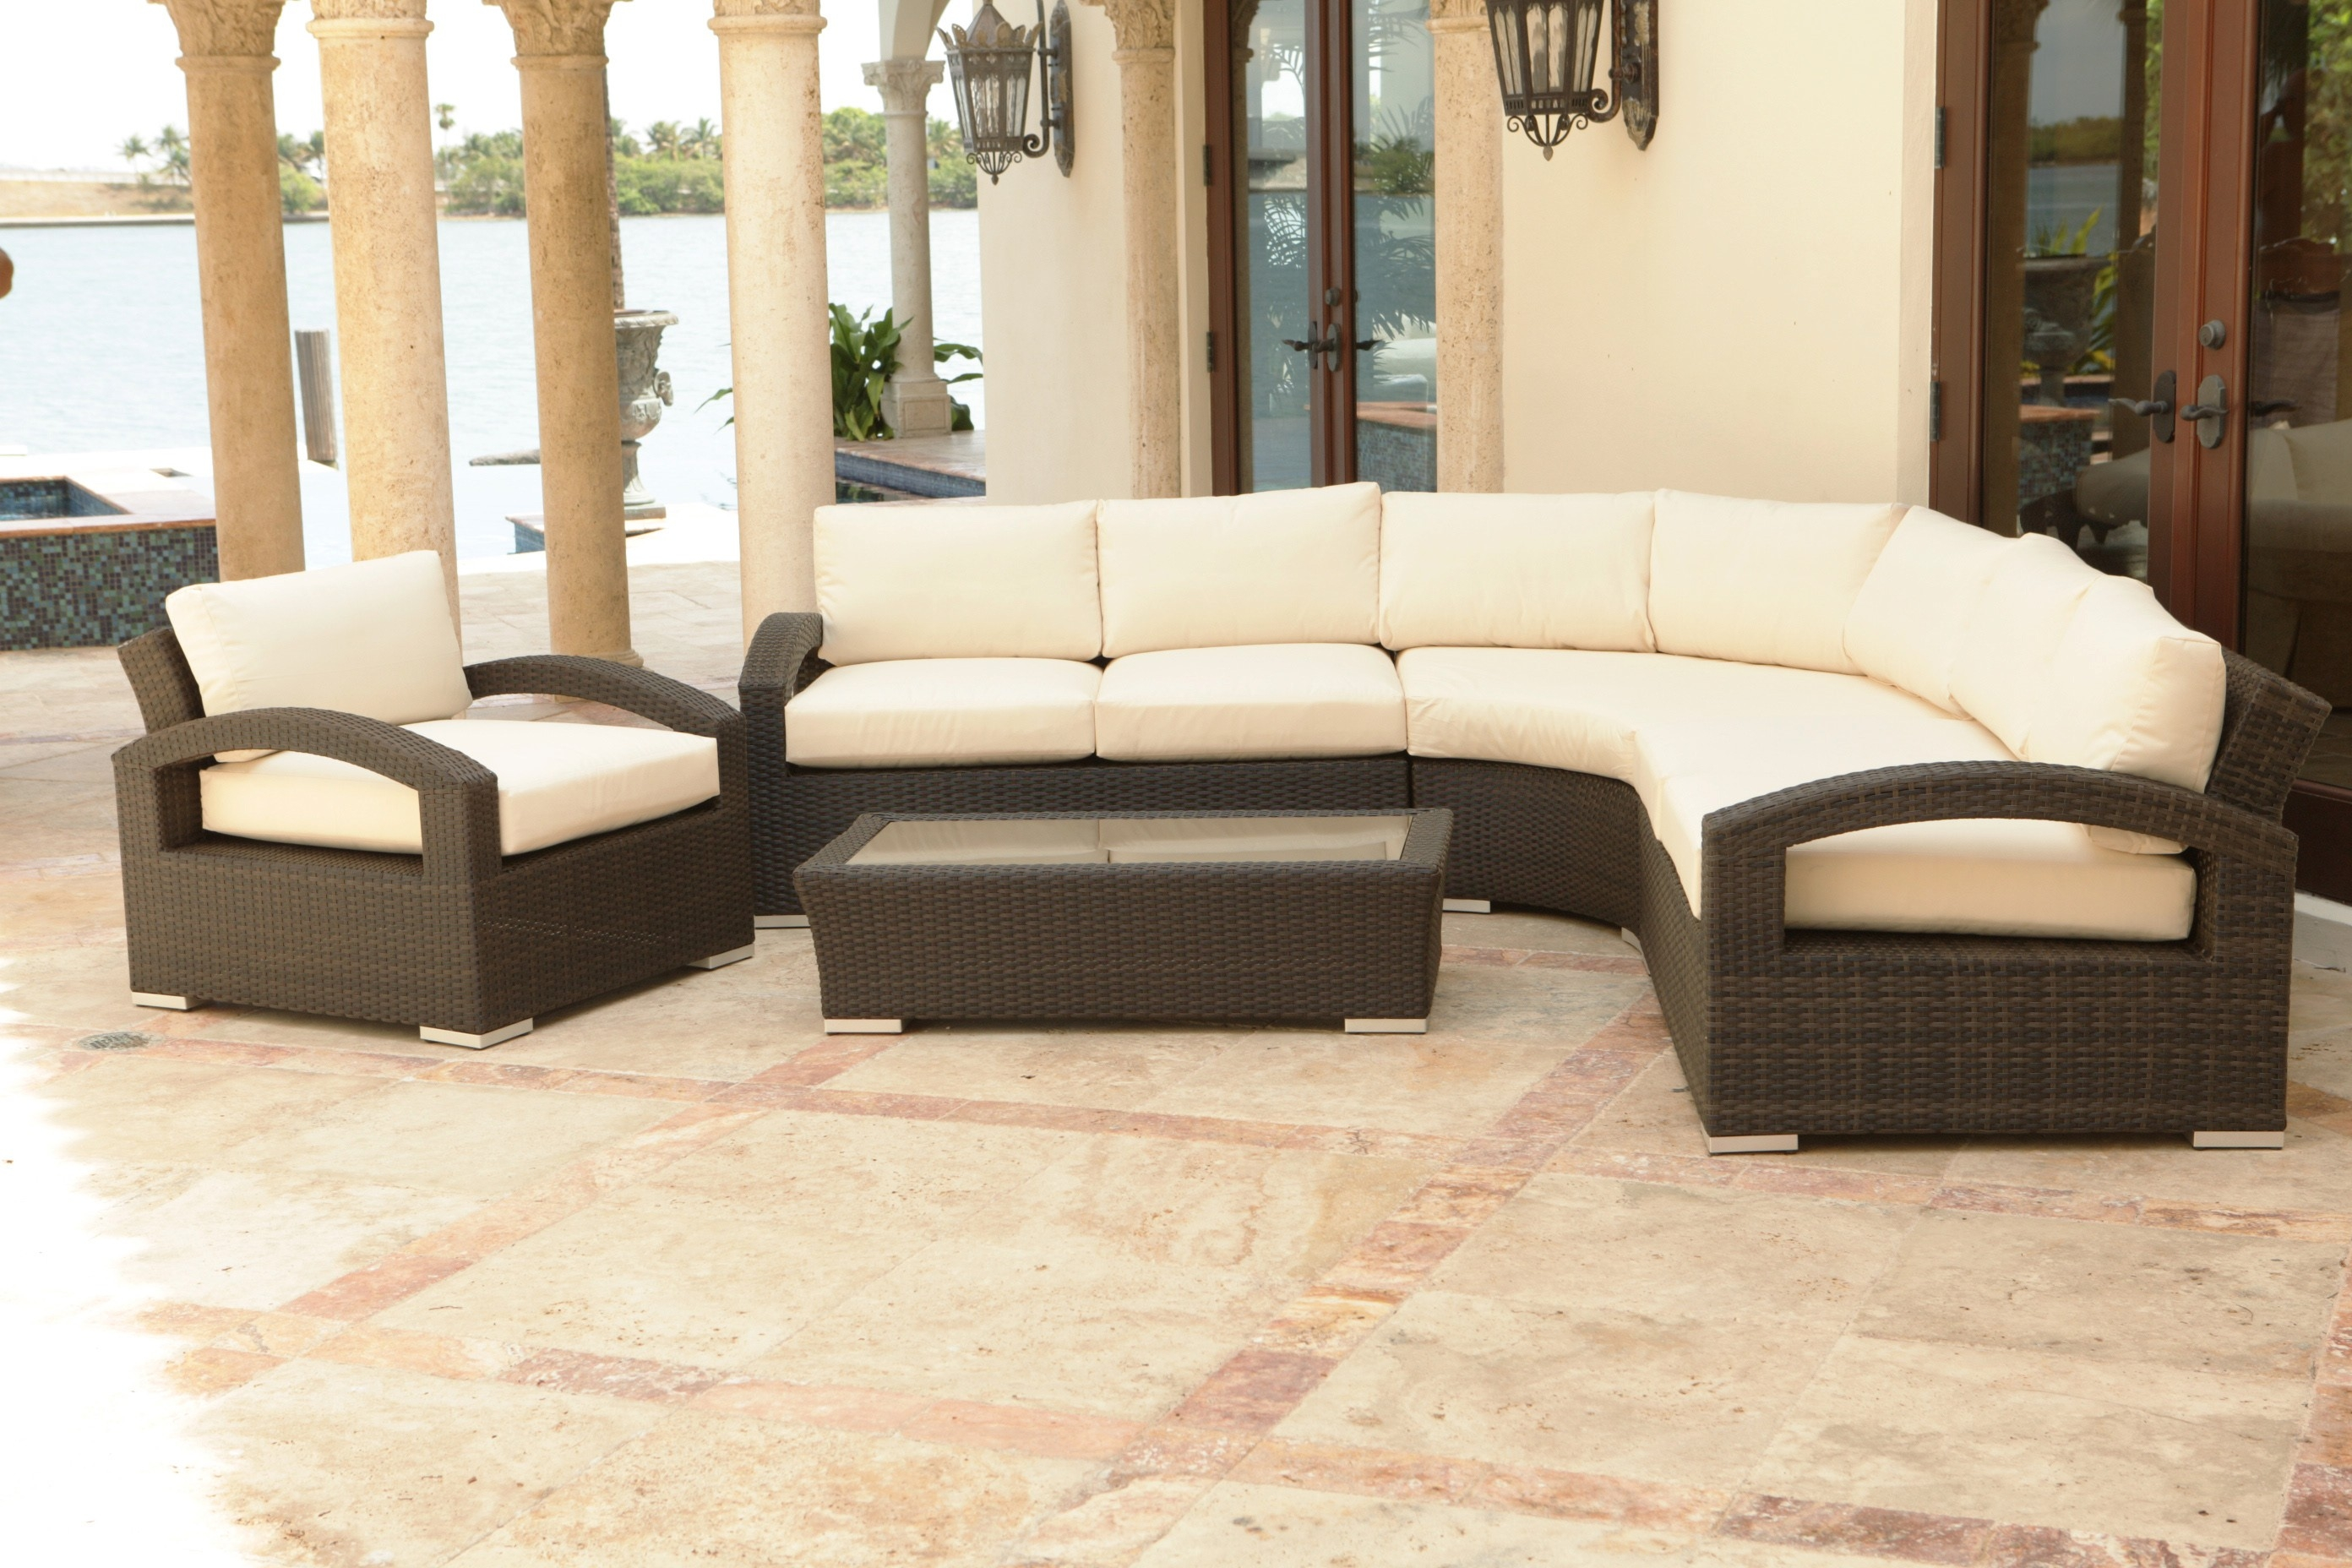 Living Room Splendiferous Saddle Brown Leather Sectional Couch Intended For Durable Sectional Sofa (View 11 of 15)